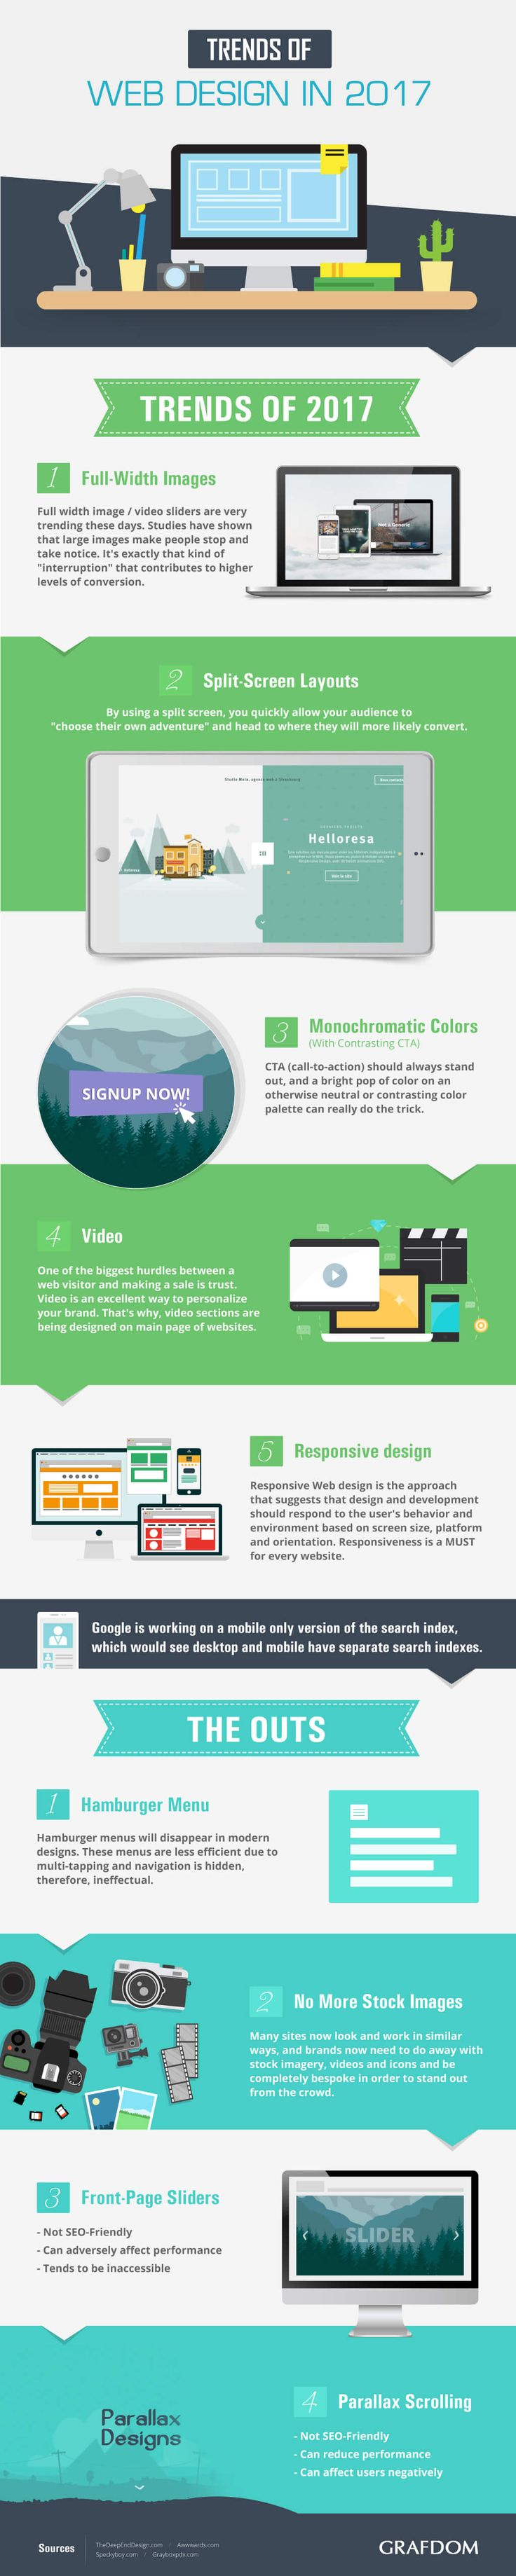 Trends Of Web Design In 2017 #Infographic #WebDesign